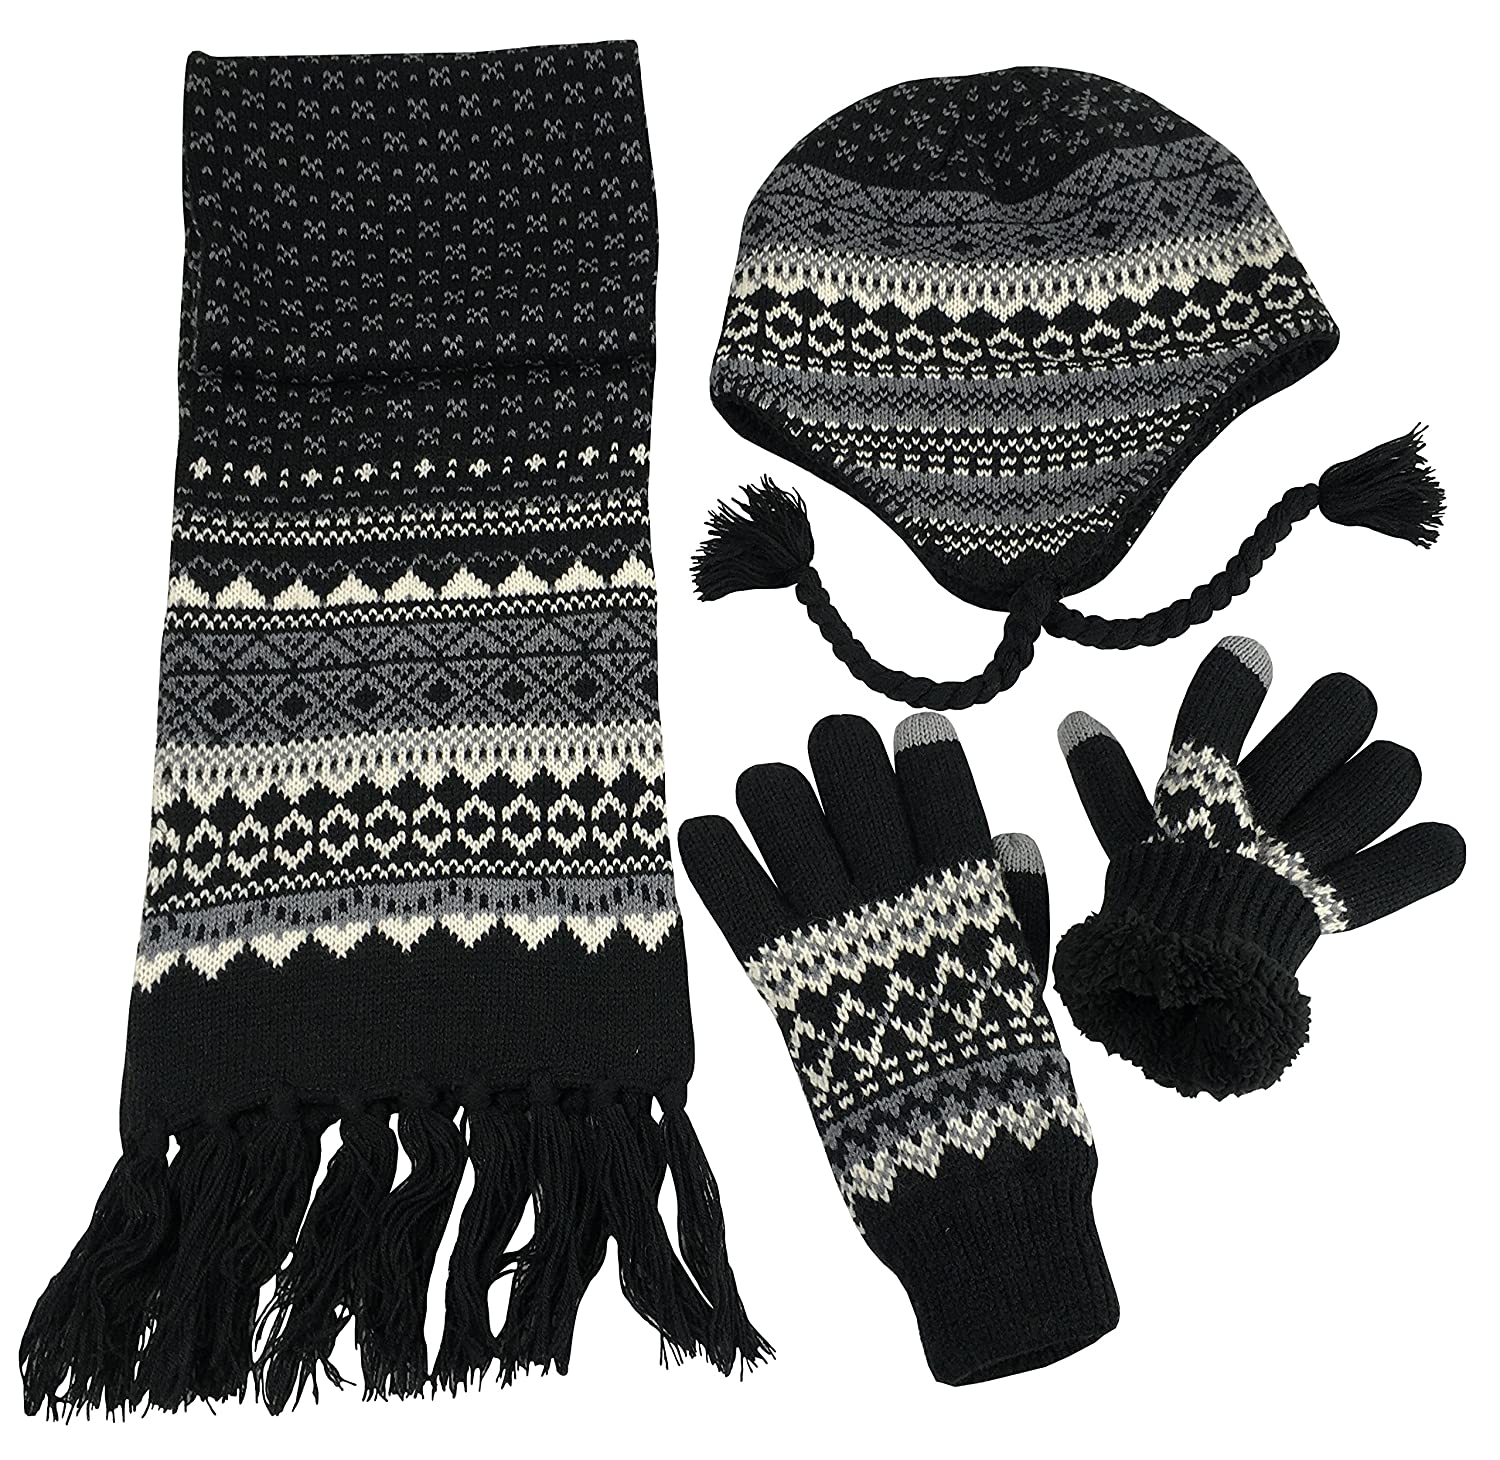 N'Ice Caps Boys Sherpa Lined Knit Hat Scarf Touchscreen Glove 3PC Skier Set 2222-B